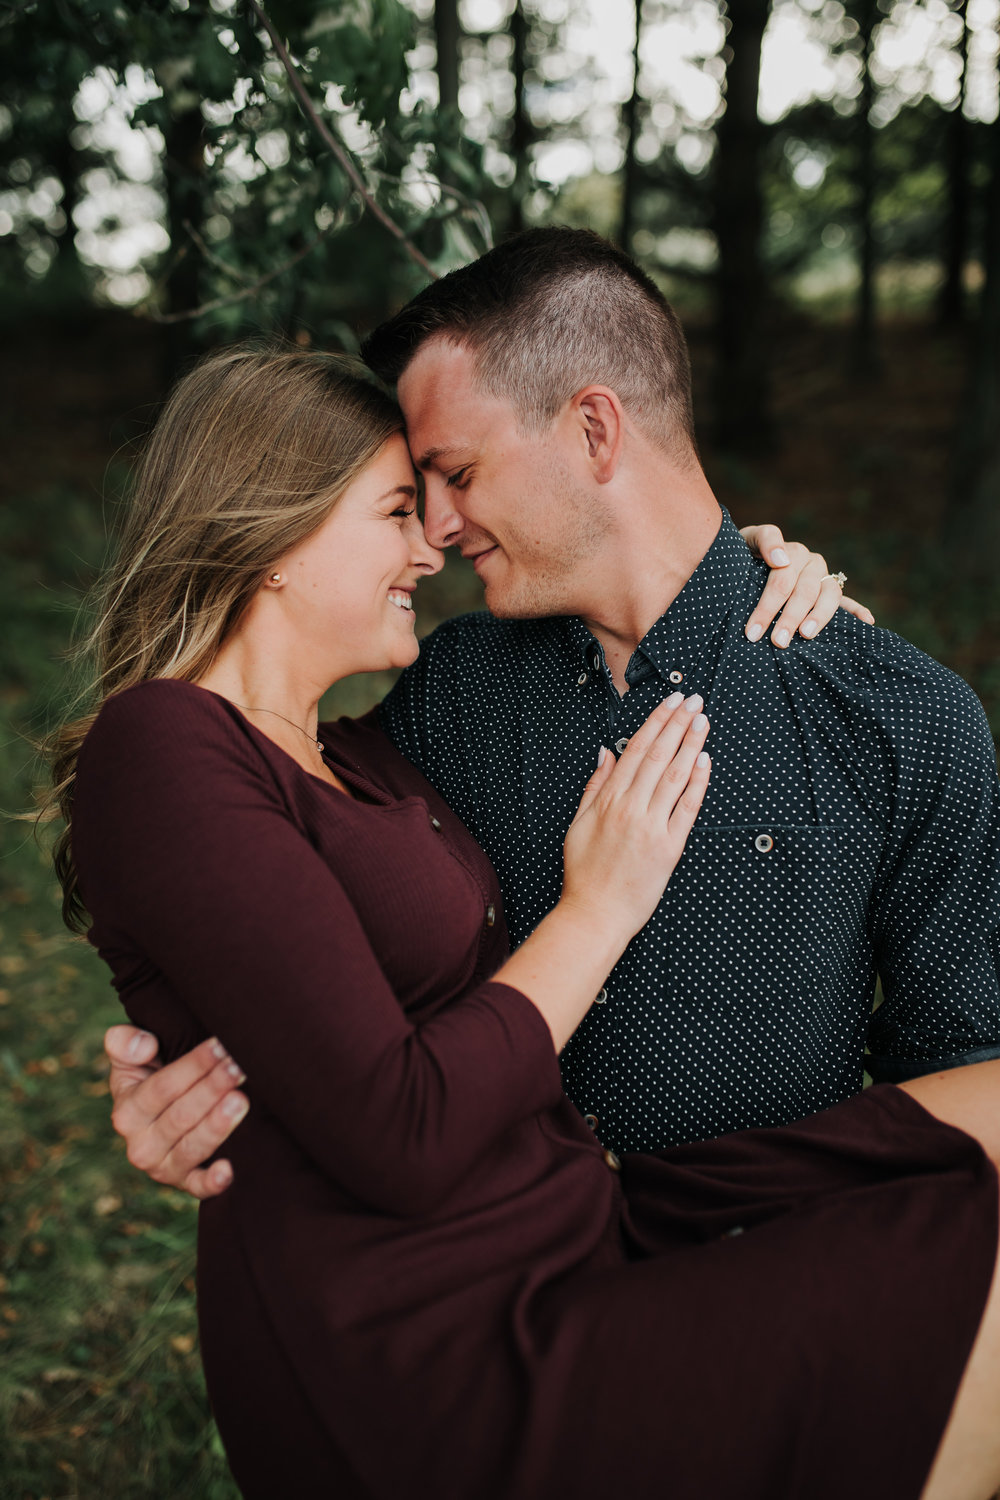 Paige & Nick - Engaged - Nathaniel Jensen Photography - Omaha Nebraska Wedding Photograper - Omaha Nebraska Engagement Session - Chalco Hills Engagement Session-25.jpg